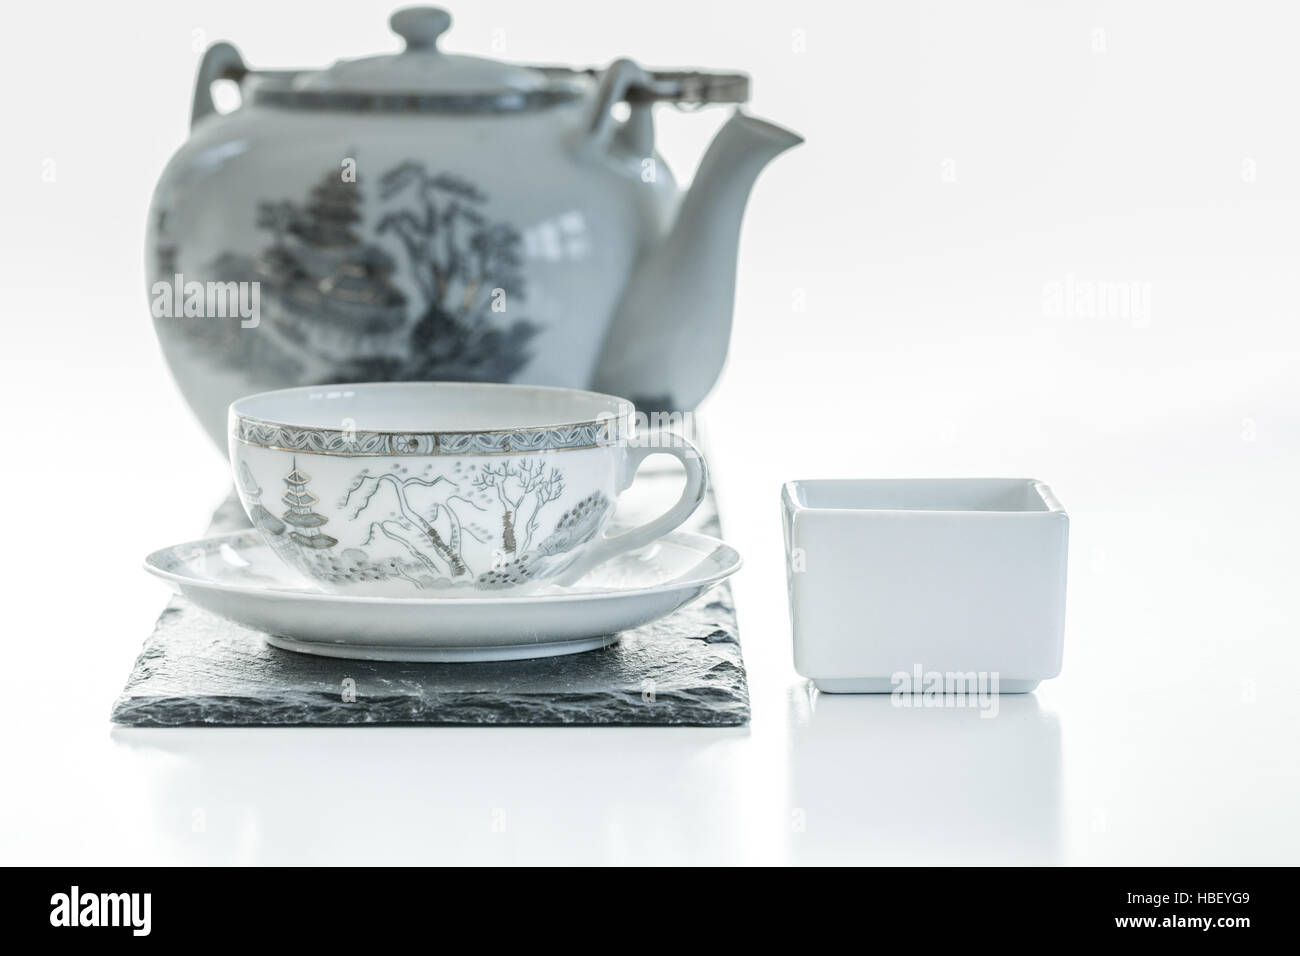 Its tea time - Stock Image